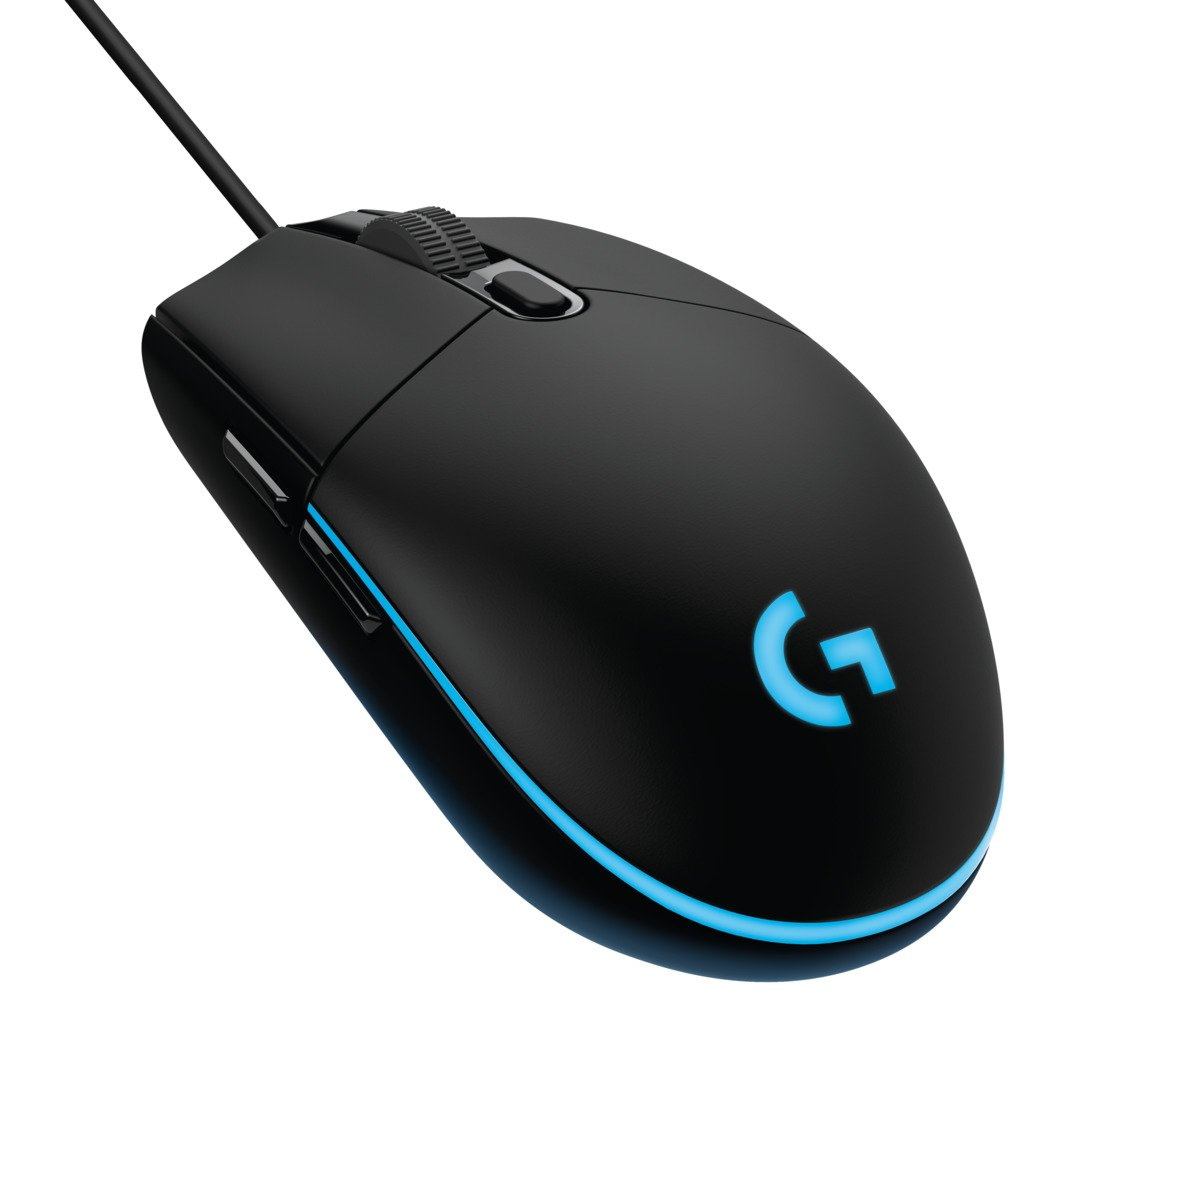 PC // Mac On-Board Memory Rubber Sides - Black 6 Buttons Optical Gaming Mouse RGB Illumination SteelSeries Rival 310